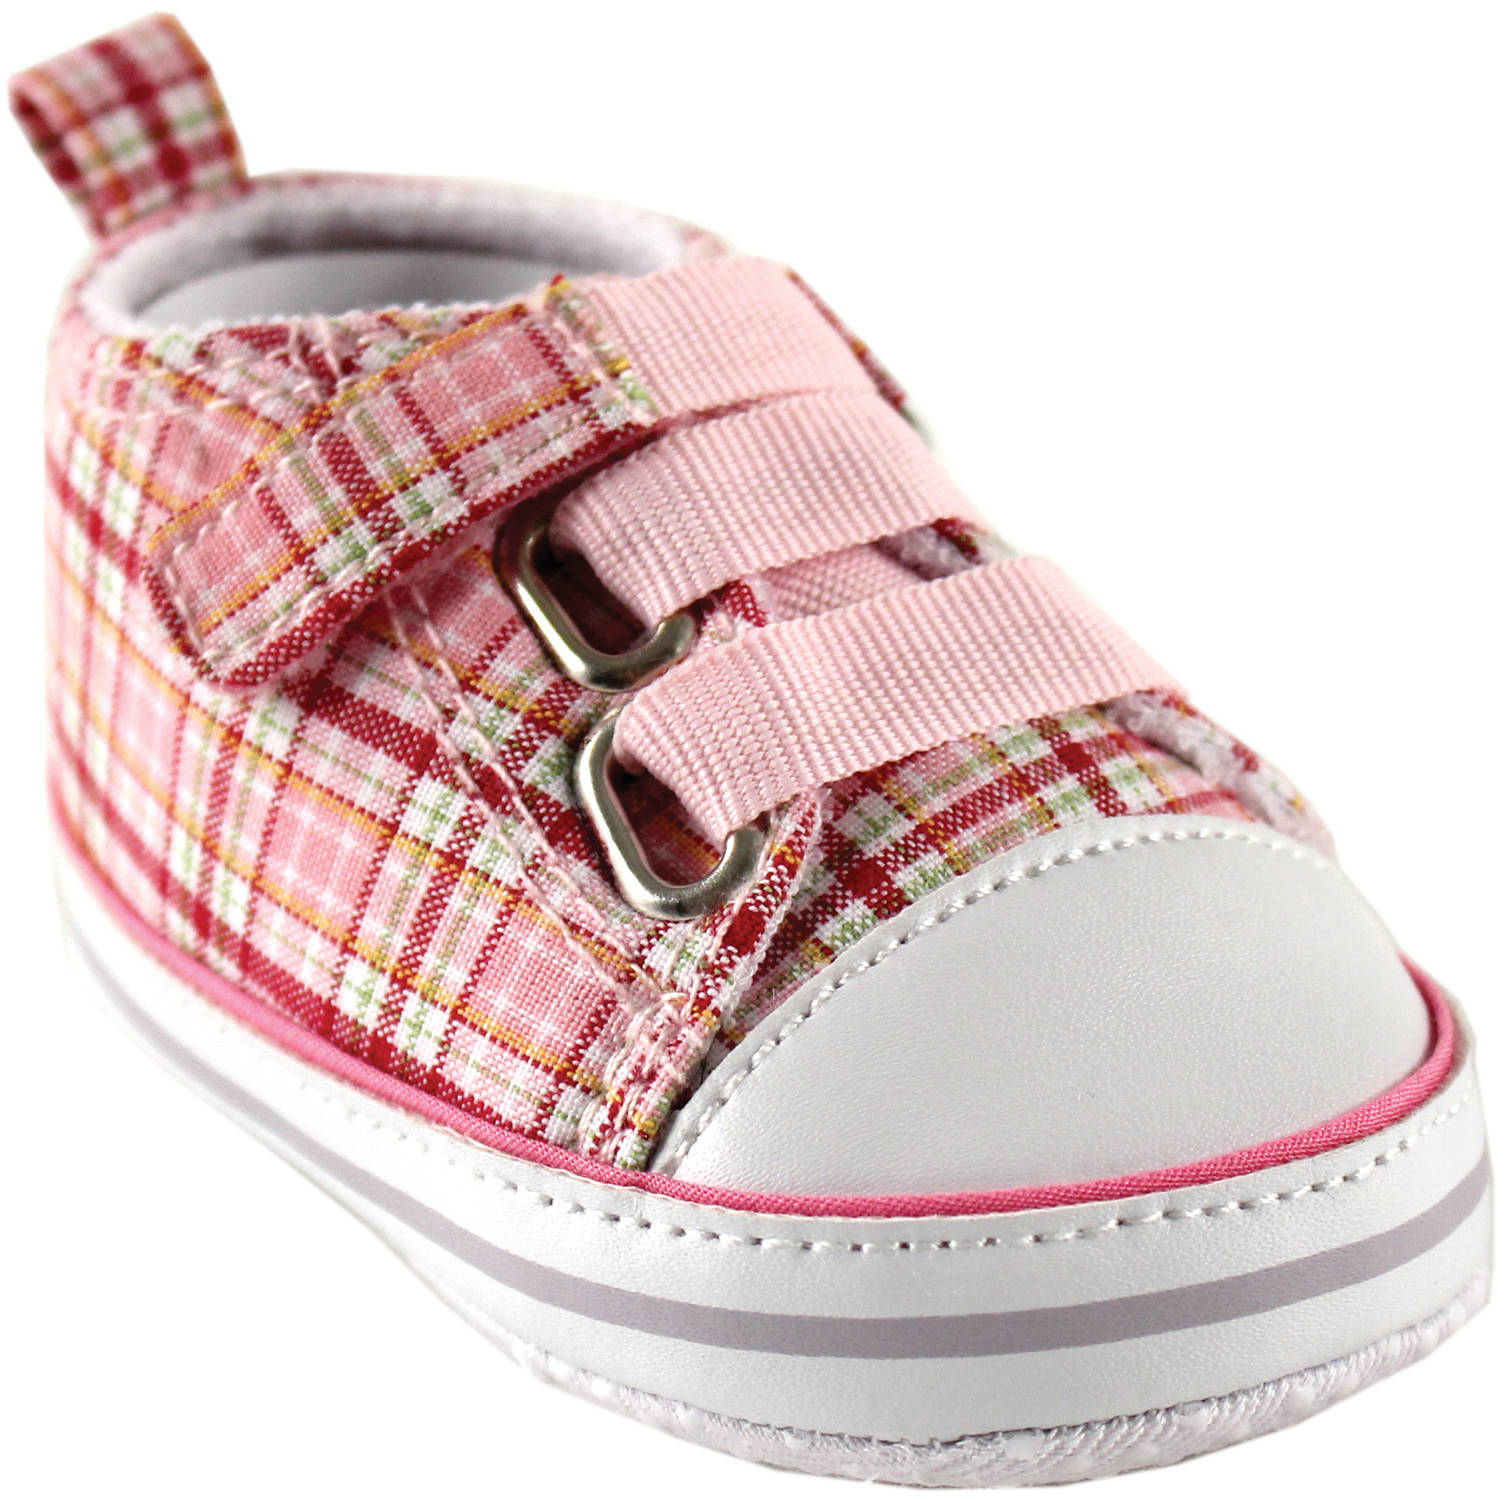 Luvable Friends Newborn Baby Girl Plaid Sneakers